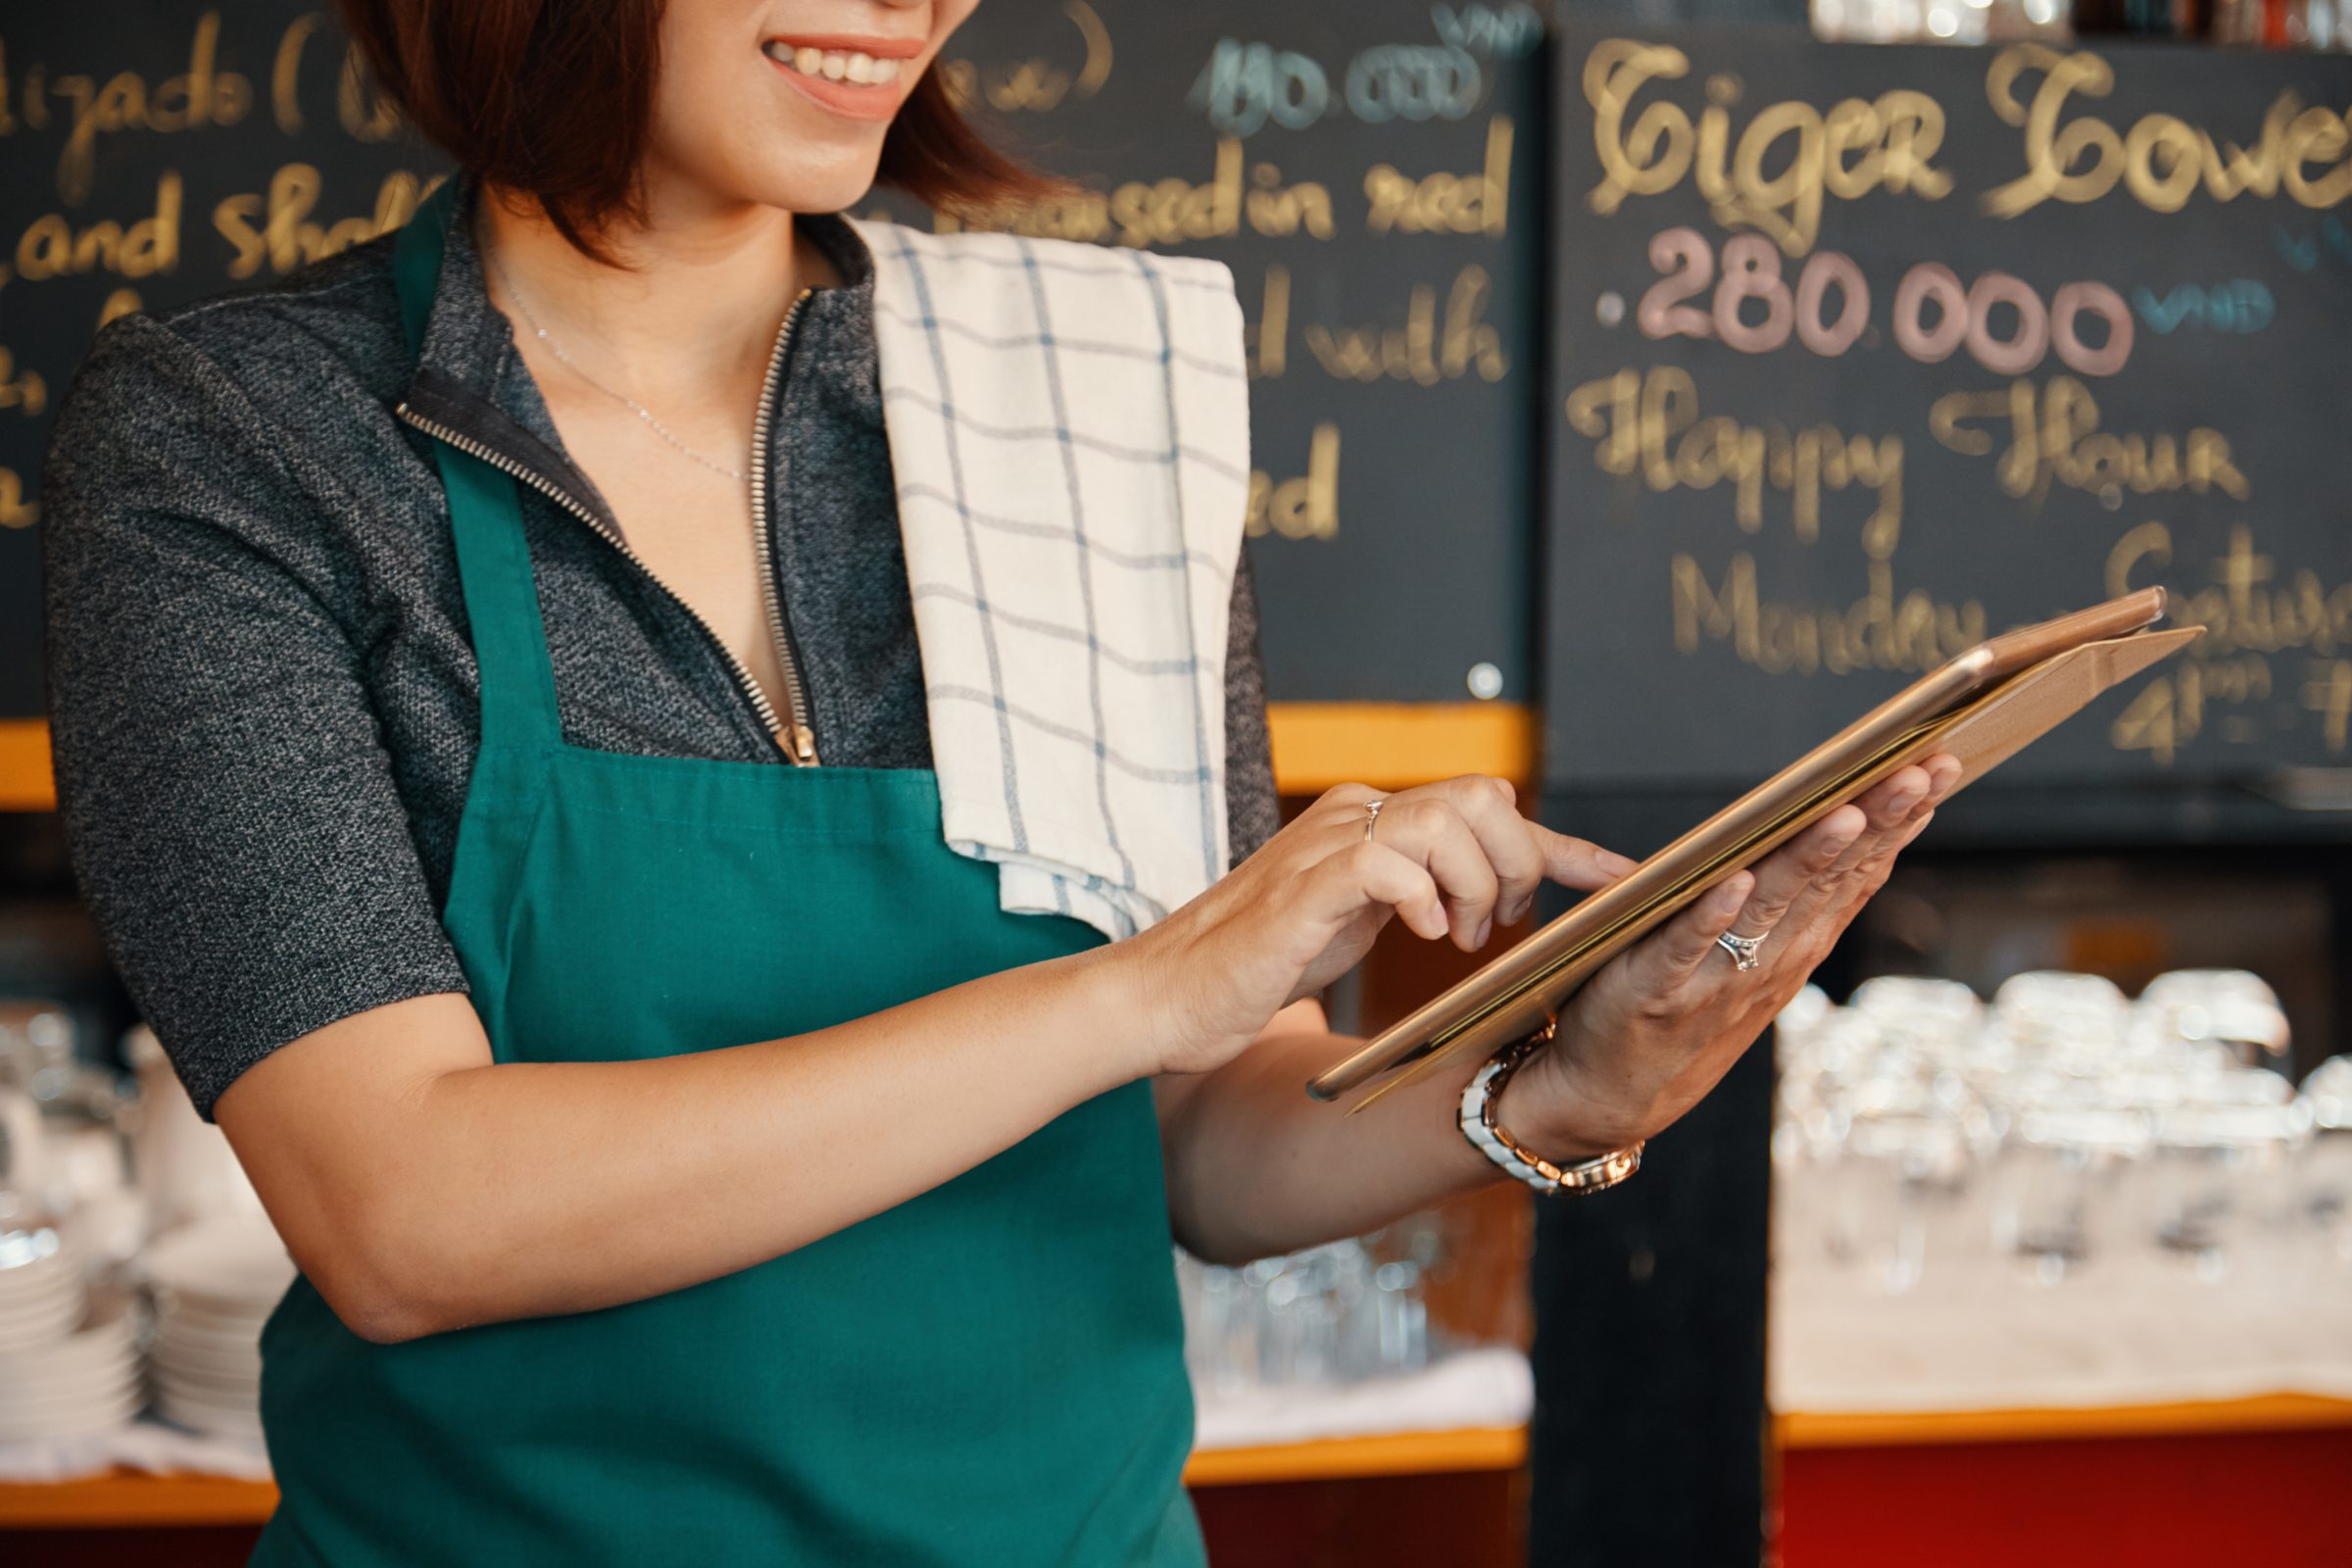 Improve your restaurant business model by implementing automation with online ordering systems